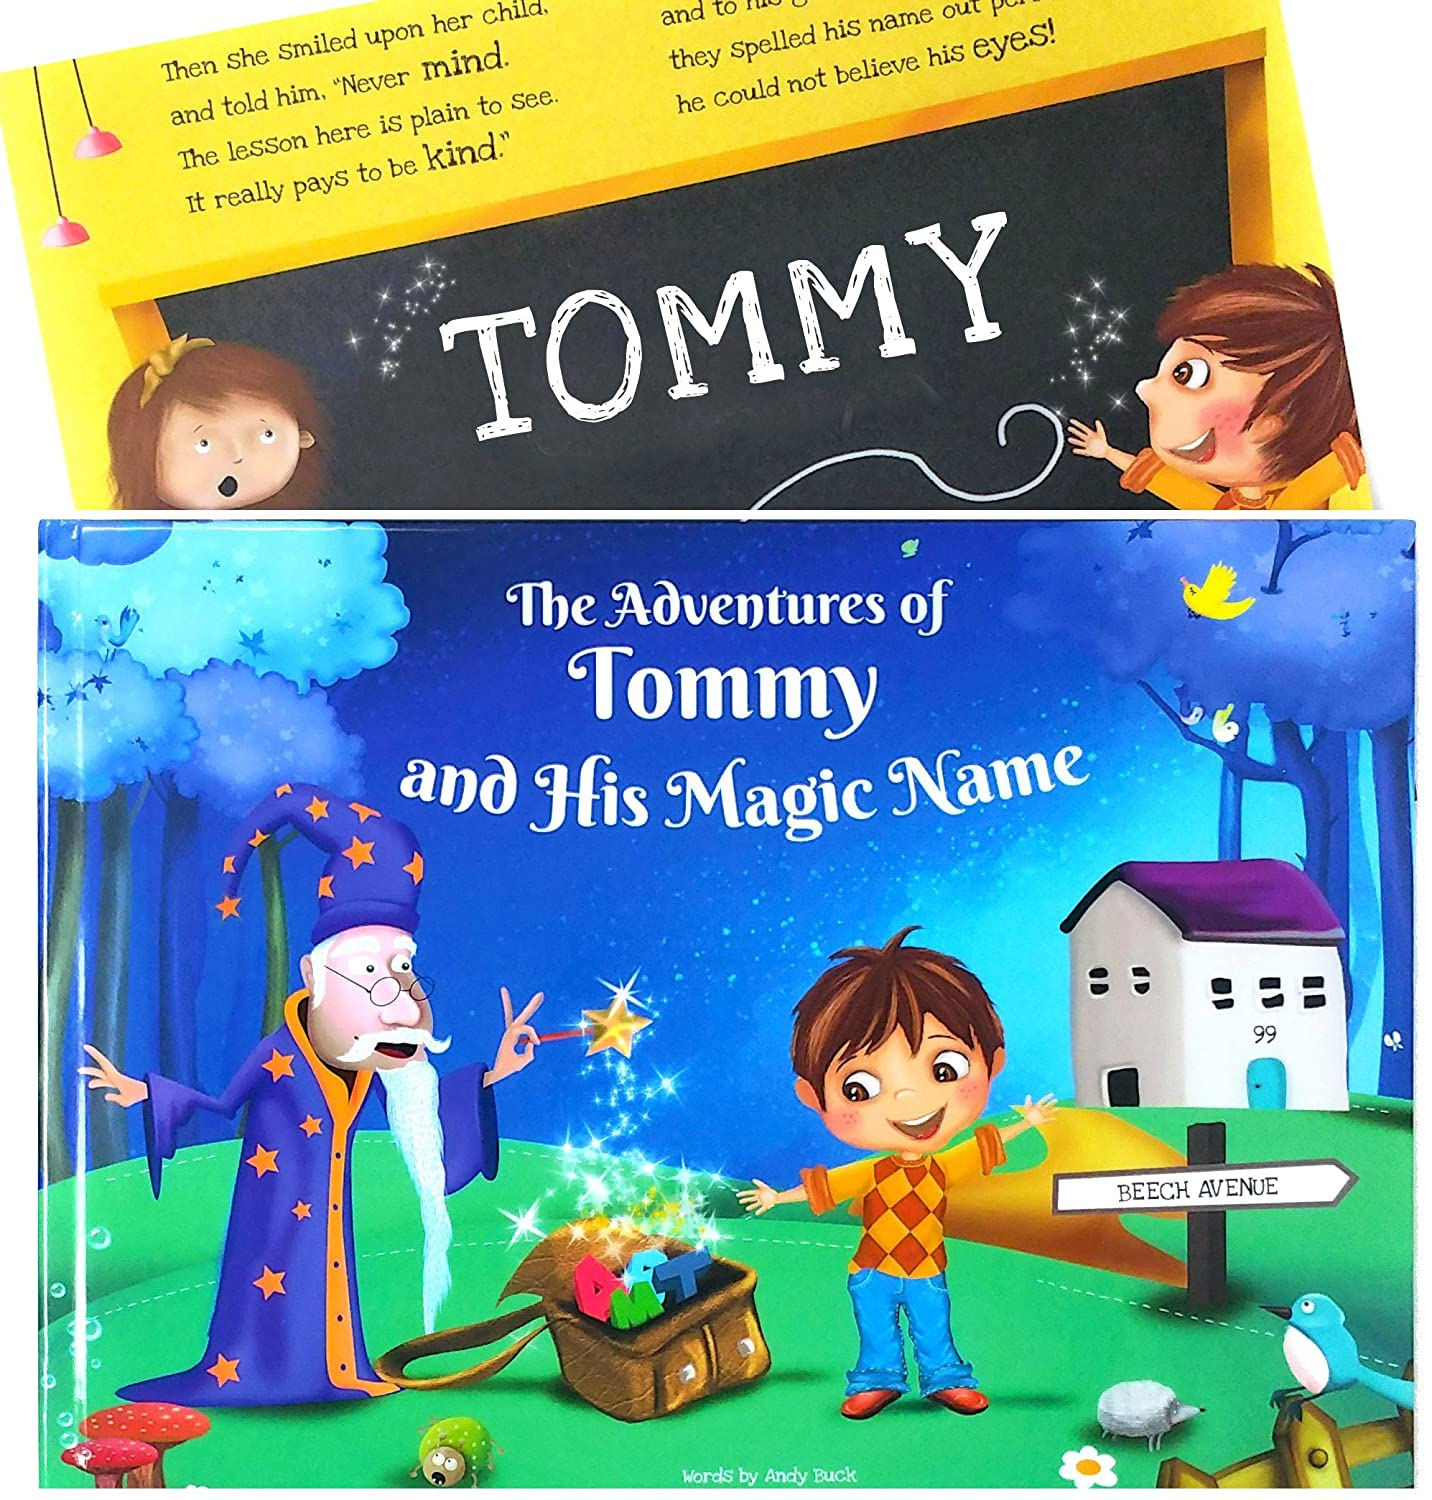 Clever Personalized Story Book for Young Children - Keepsake Gift